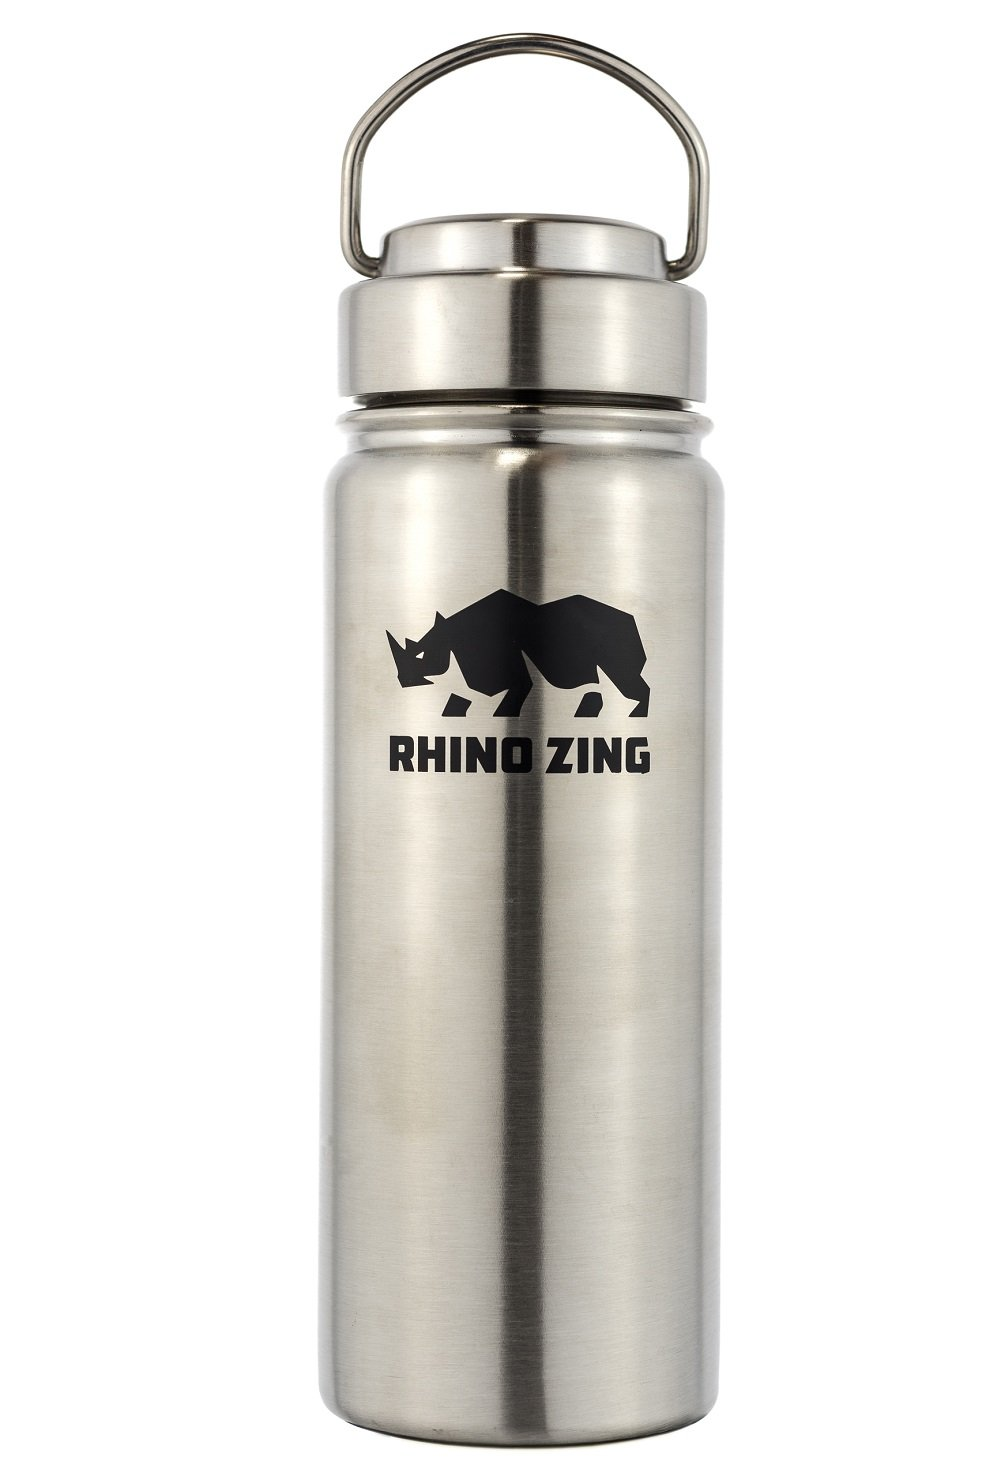 Rhino Zing 18-Ounce Beer Growler Stainless Steel Water Bottle with Stainless Steel Lid. Insulated, Wide Mouth